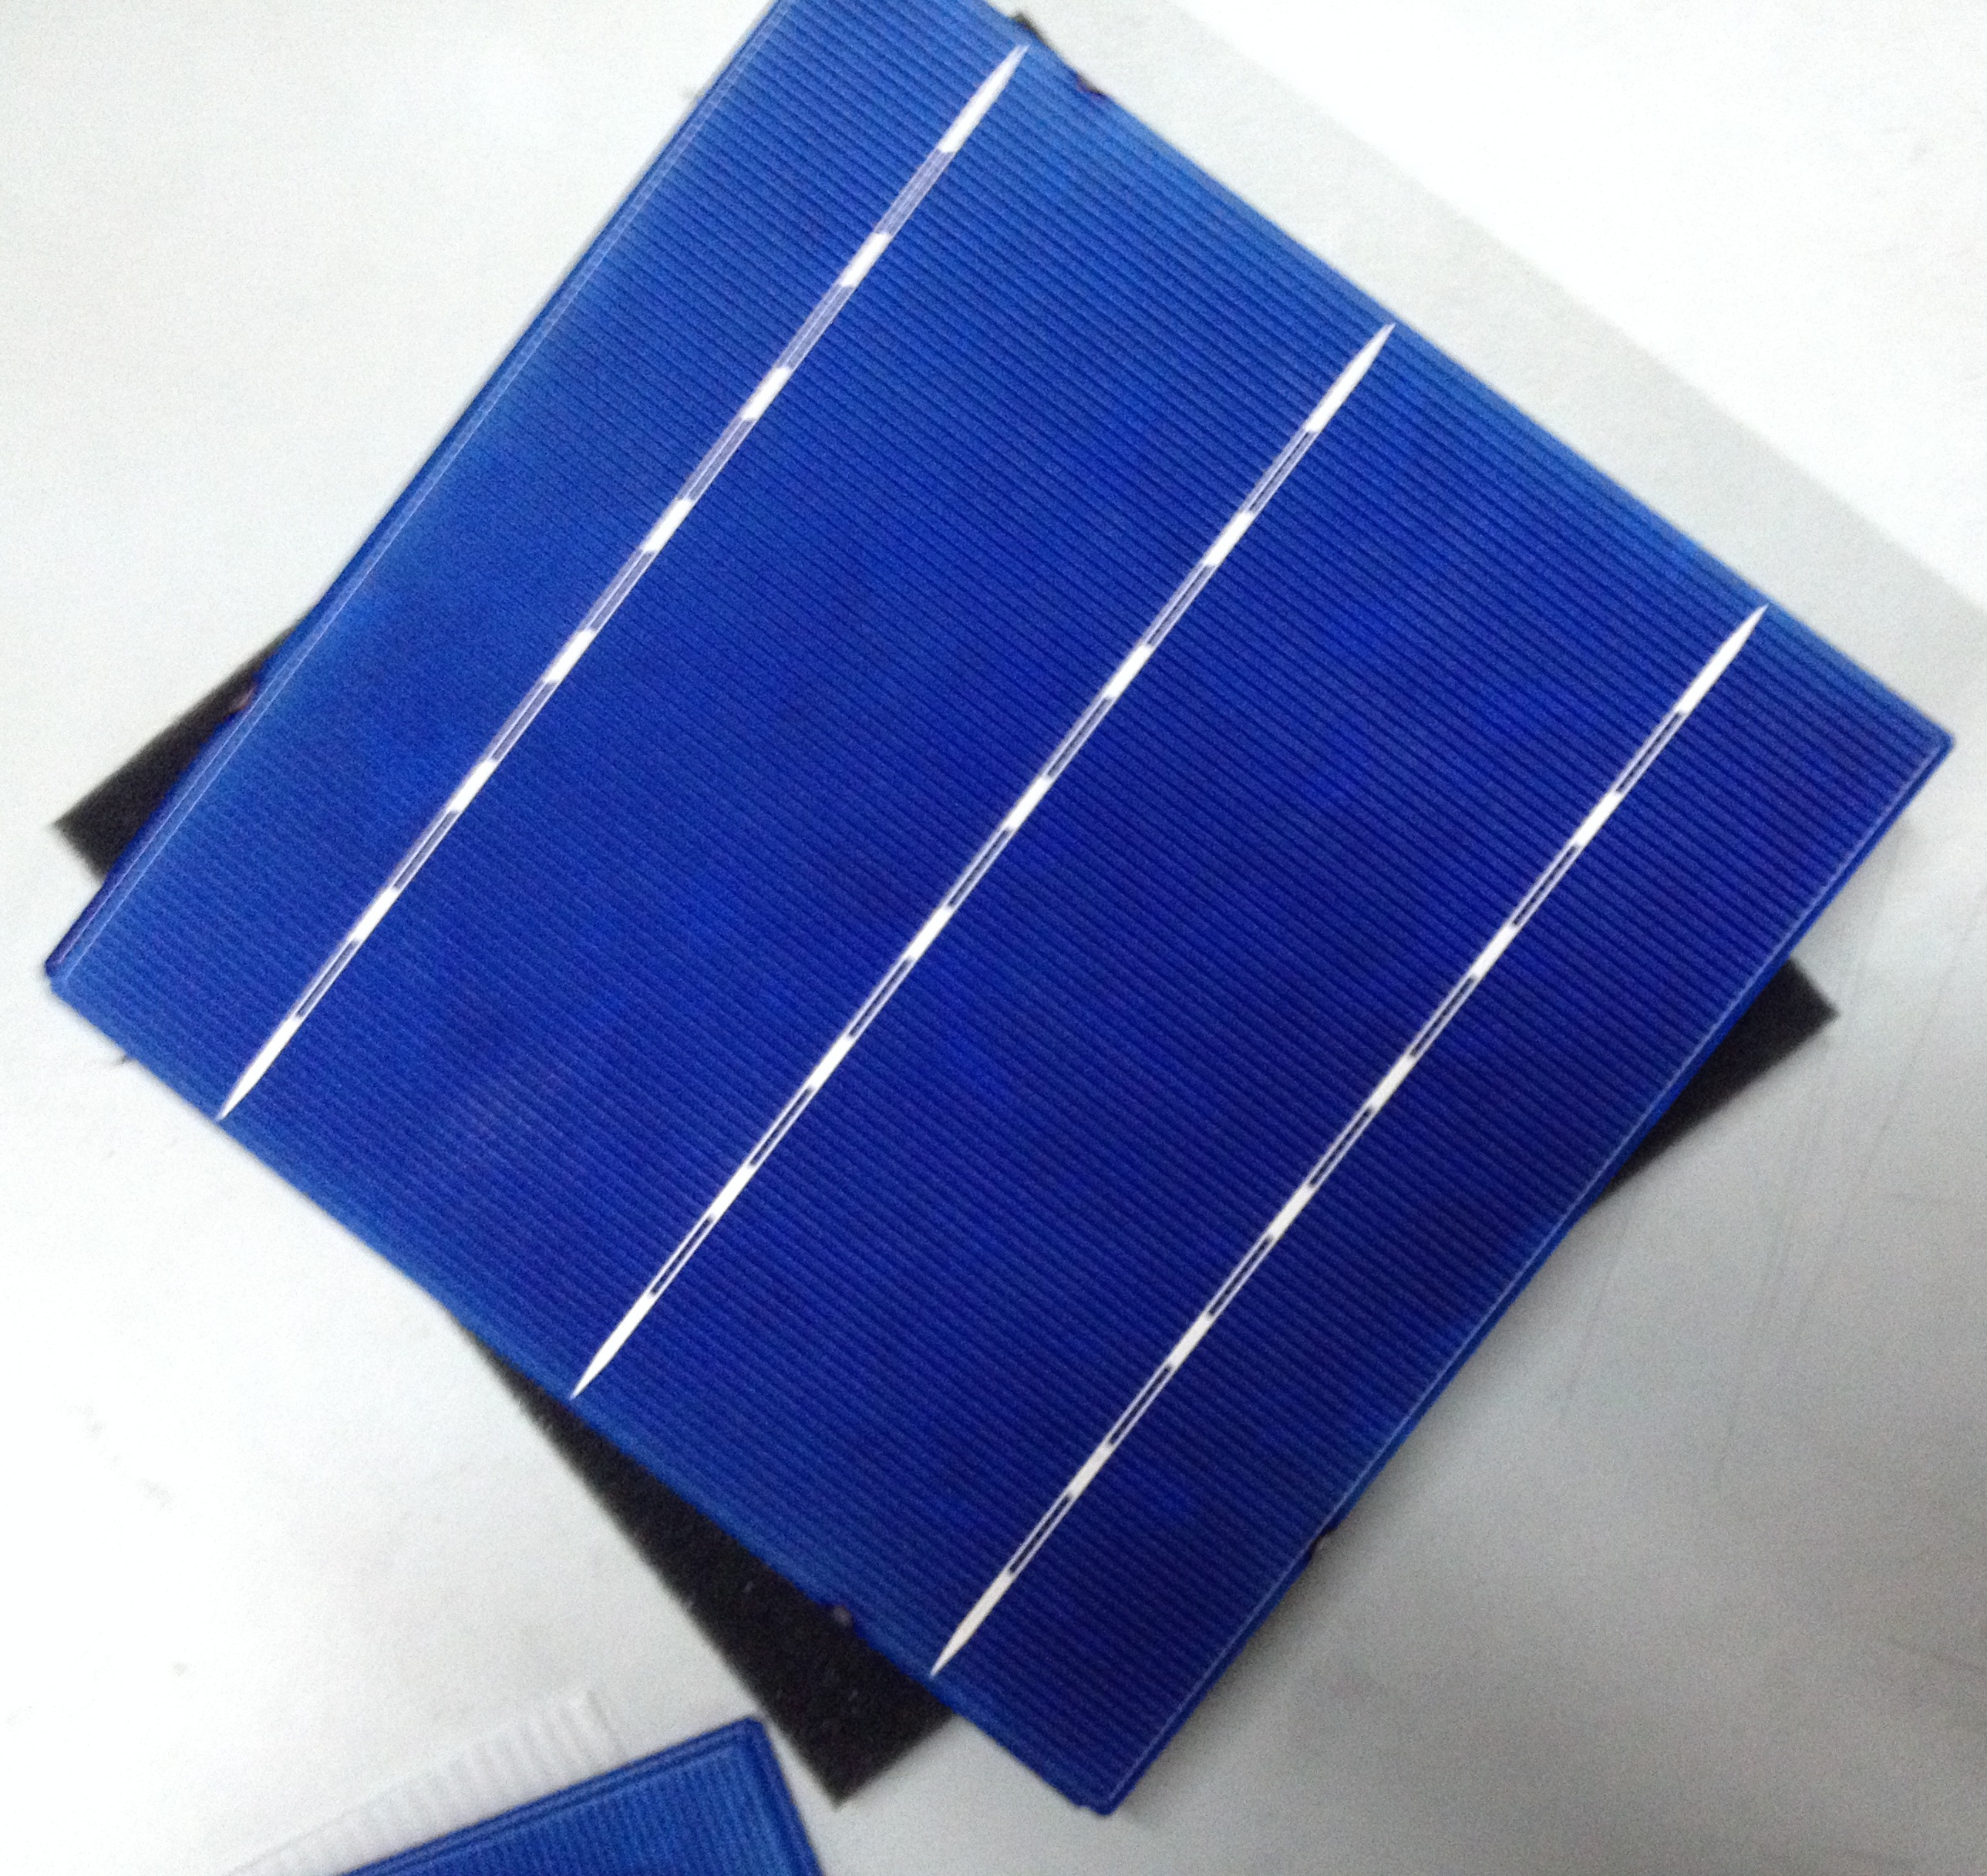 Polycrystalline Solar Cells-Tire 1 Manufacturer -17.4%